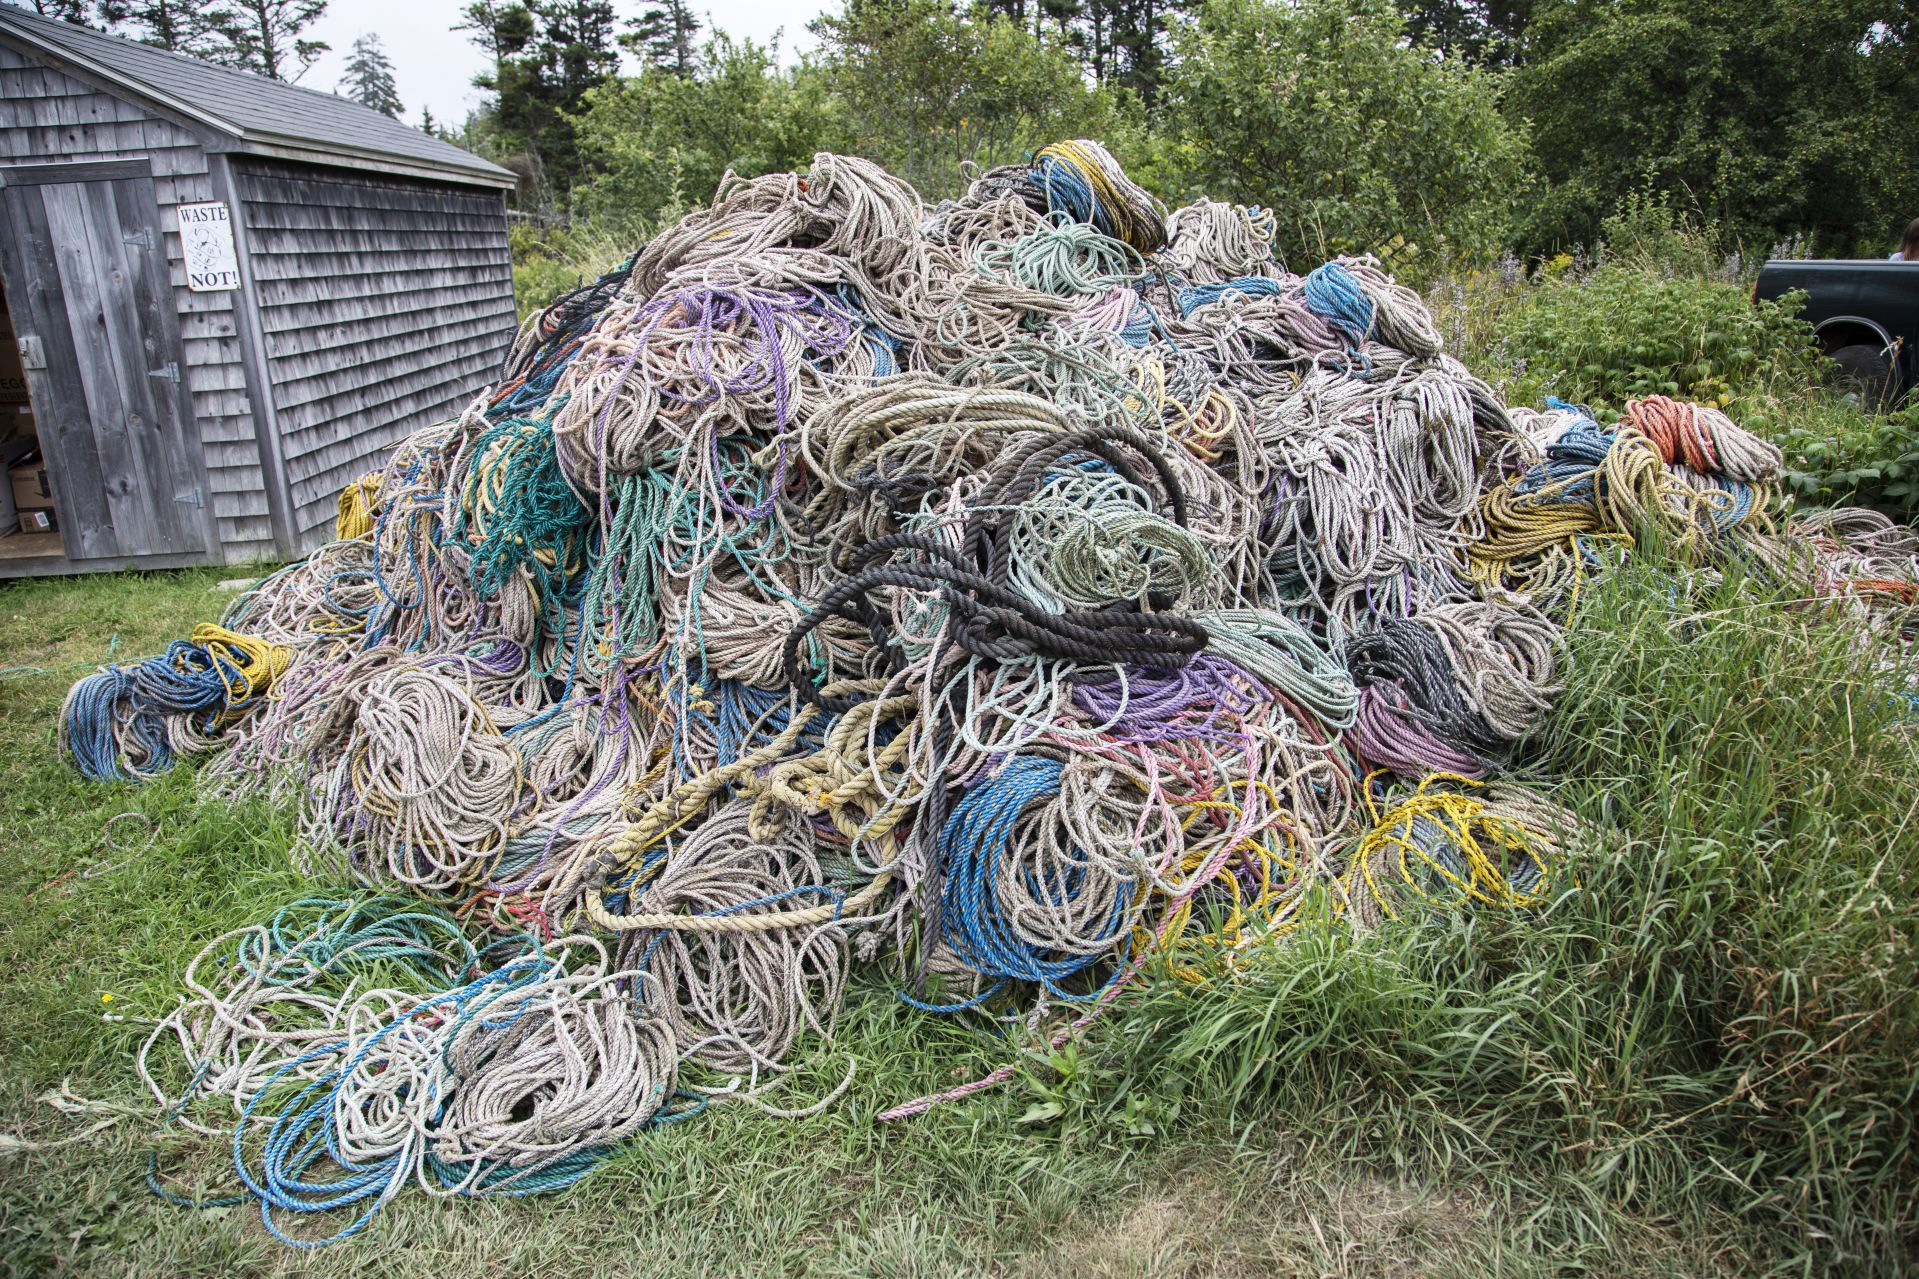 Old rope on Matinicus Island seen on August 7, 2019.A book author and essayist, she's been a year-round resident of Matinicus Island for more than 30 years, starting as a teacher and now a leading island citizen involved in many island issues.